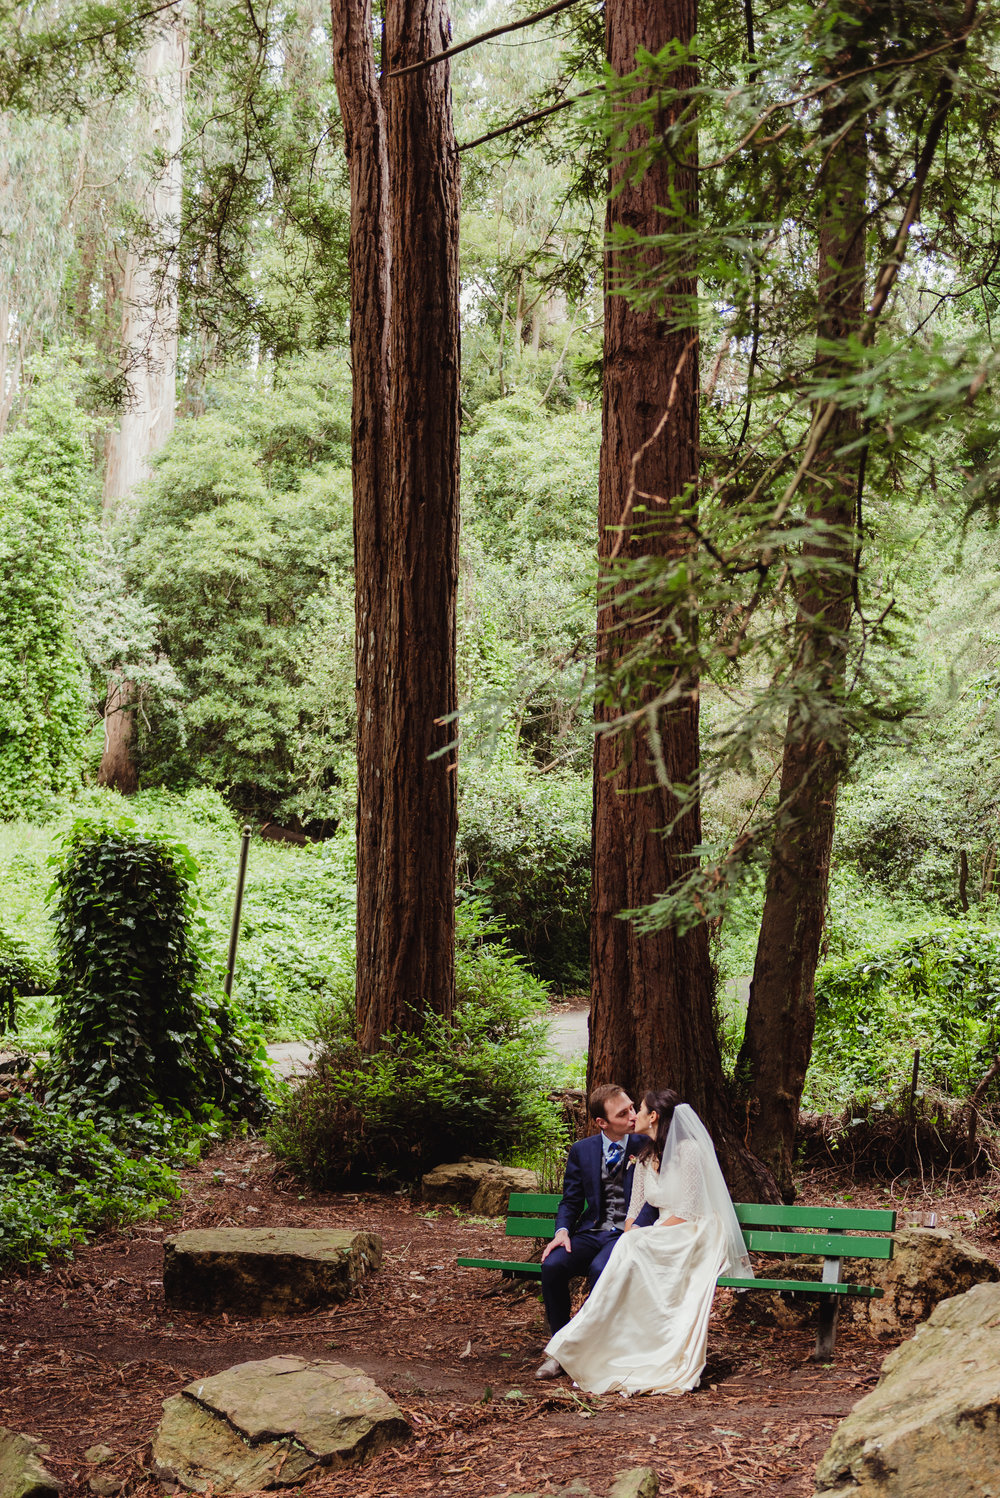 42vintage-san-francisco-stern-grove-wedding-vivianchen-0270.jpg